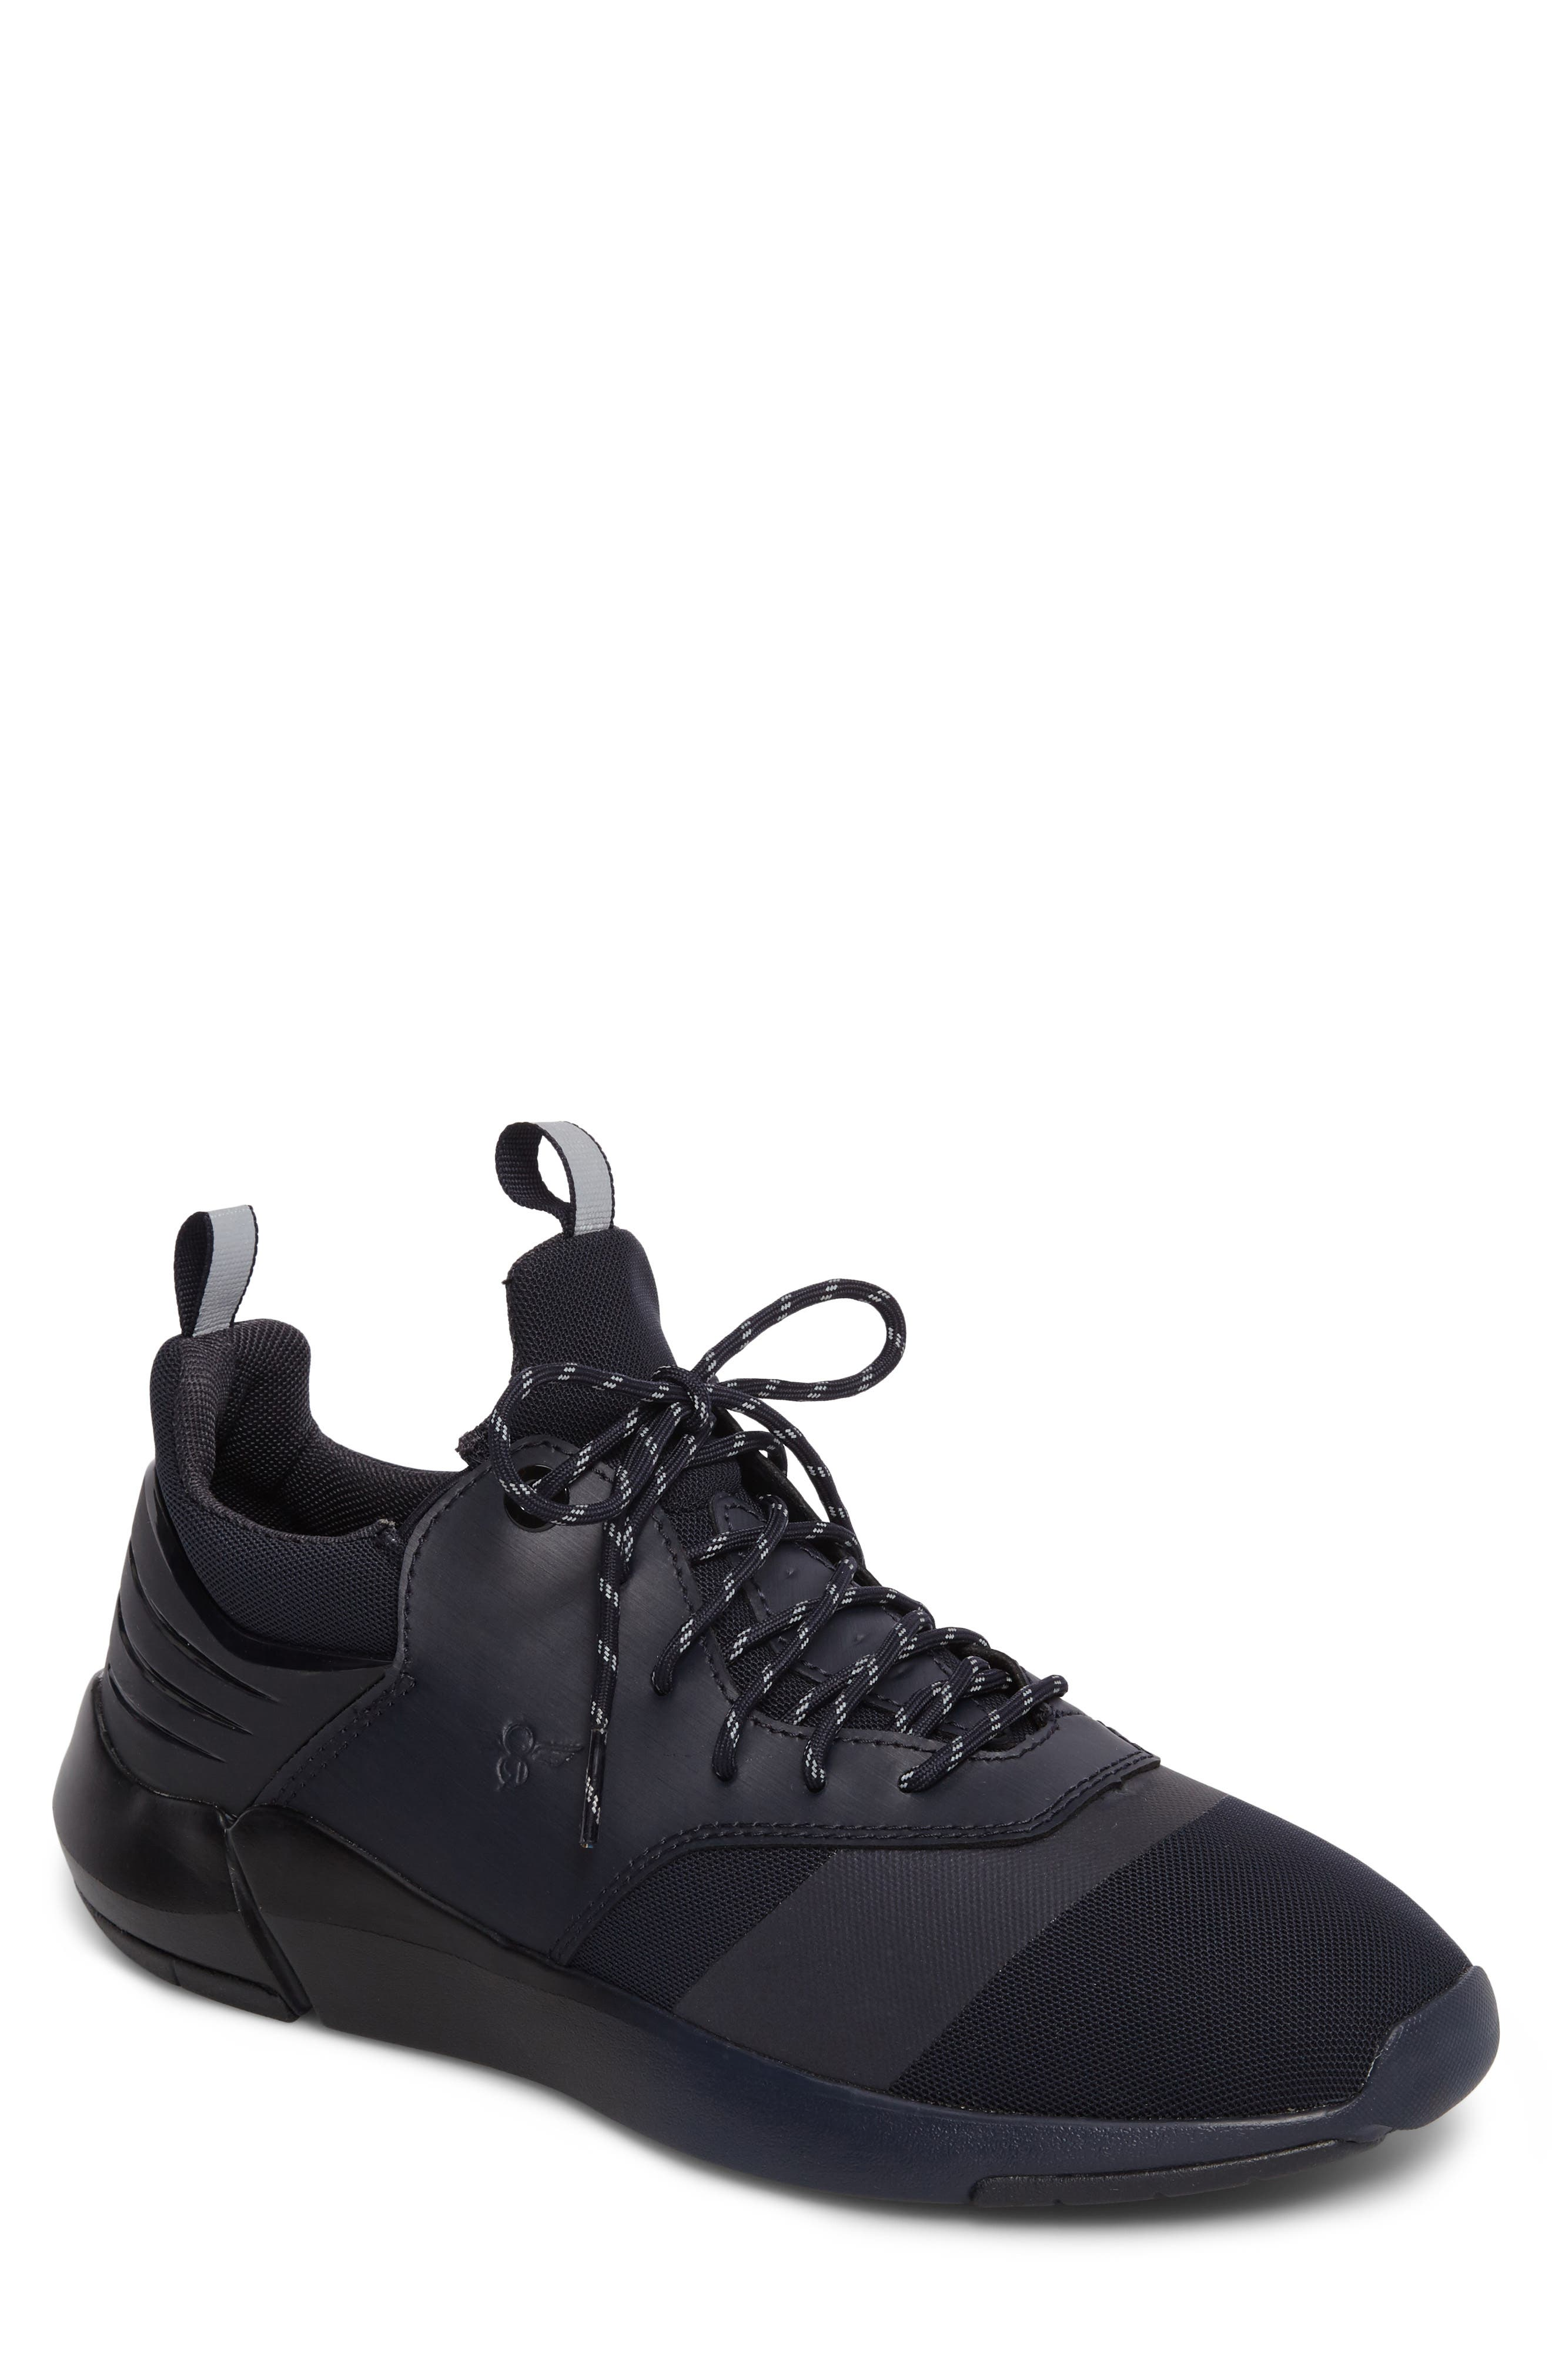 Motus Sneaker,                         Main,                         color, Navy Reflective Leather